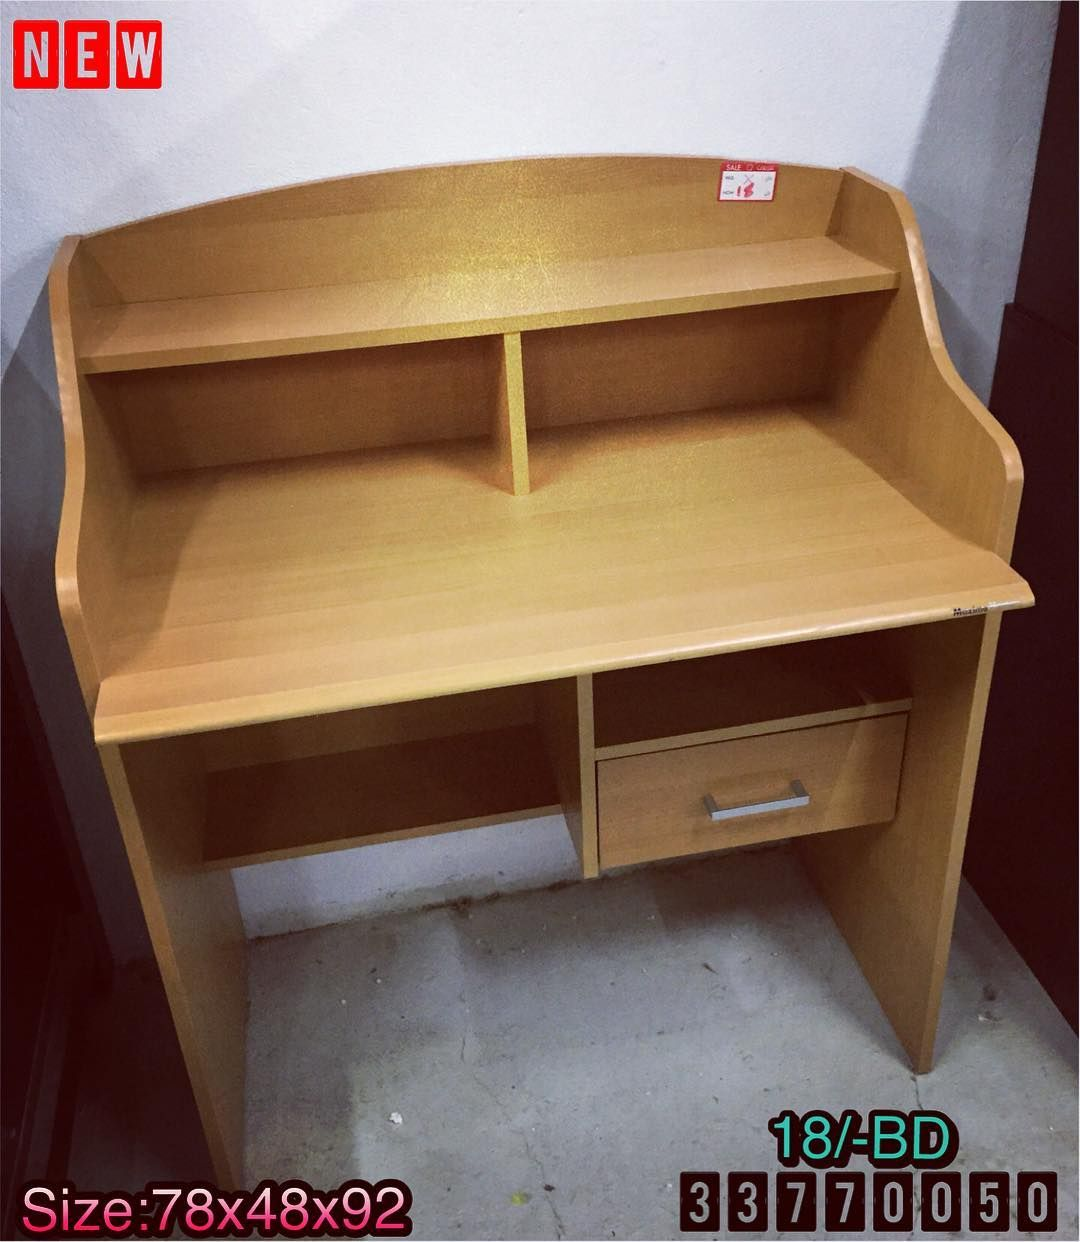 For Sale Study Table Size 78x48x92 Wood Brown Color New Made In Malaysia Price 18 Bd للبيع مكتب دراسة خشب لون بني Door Design Home Decor Decor